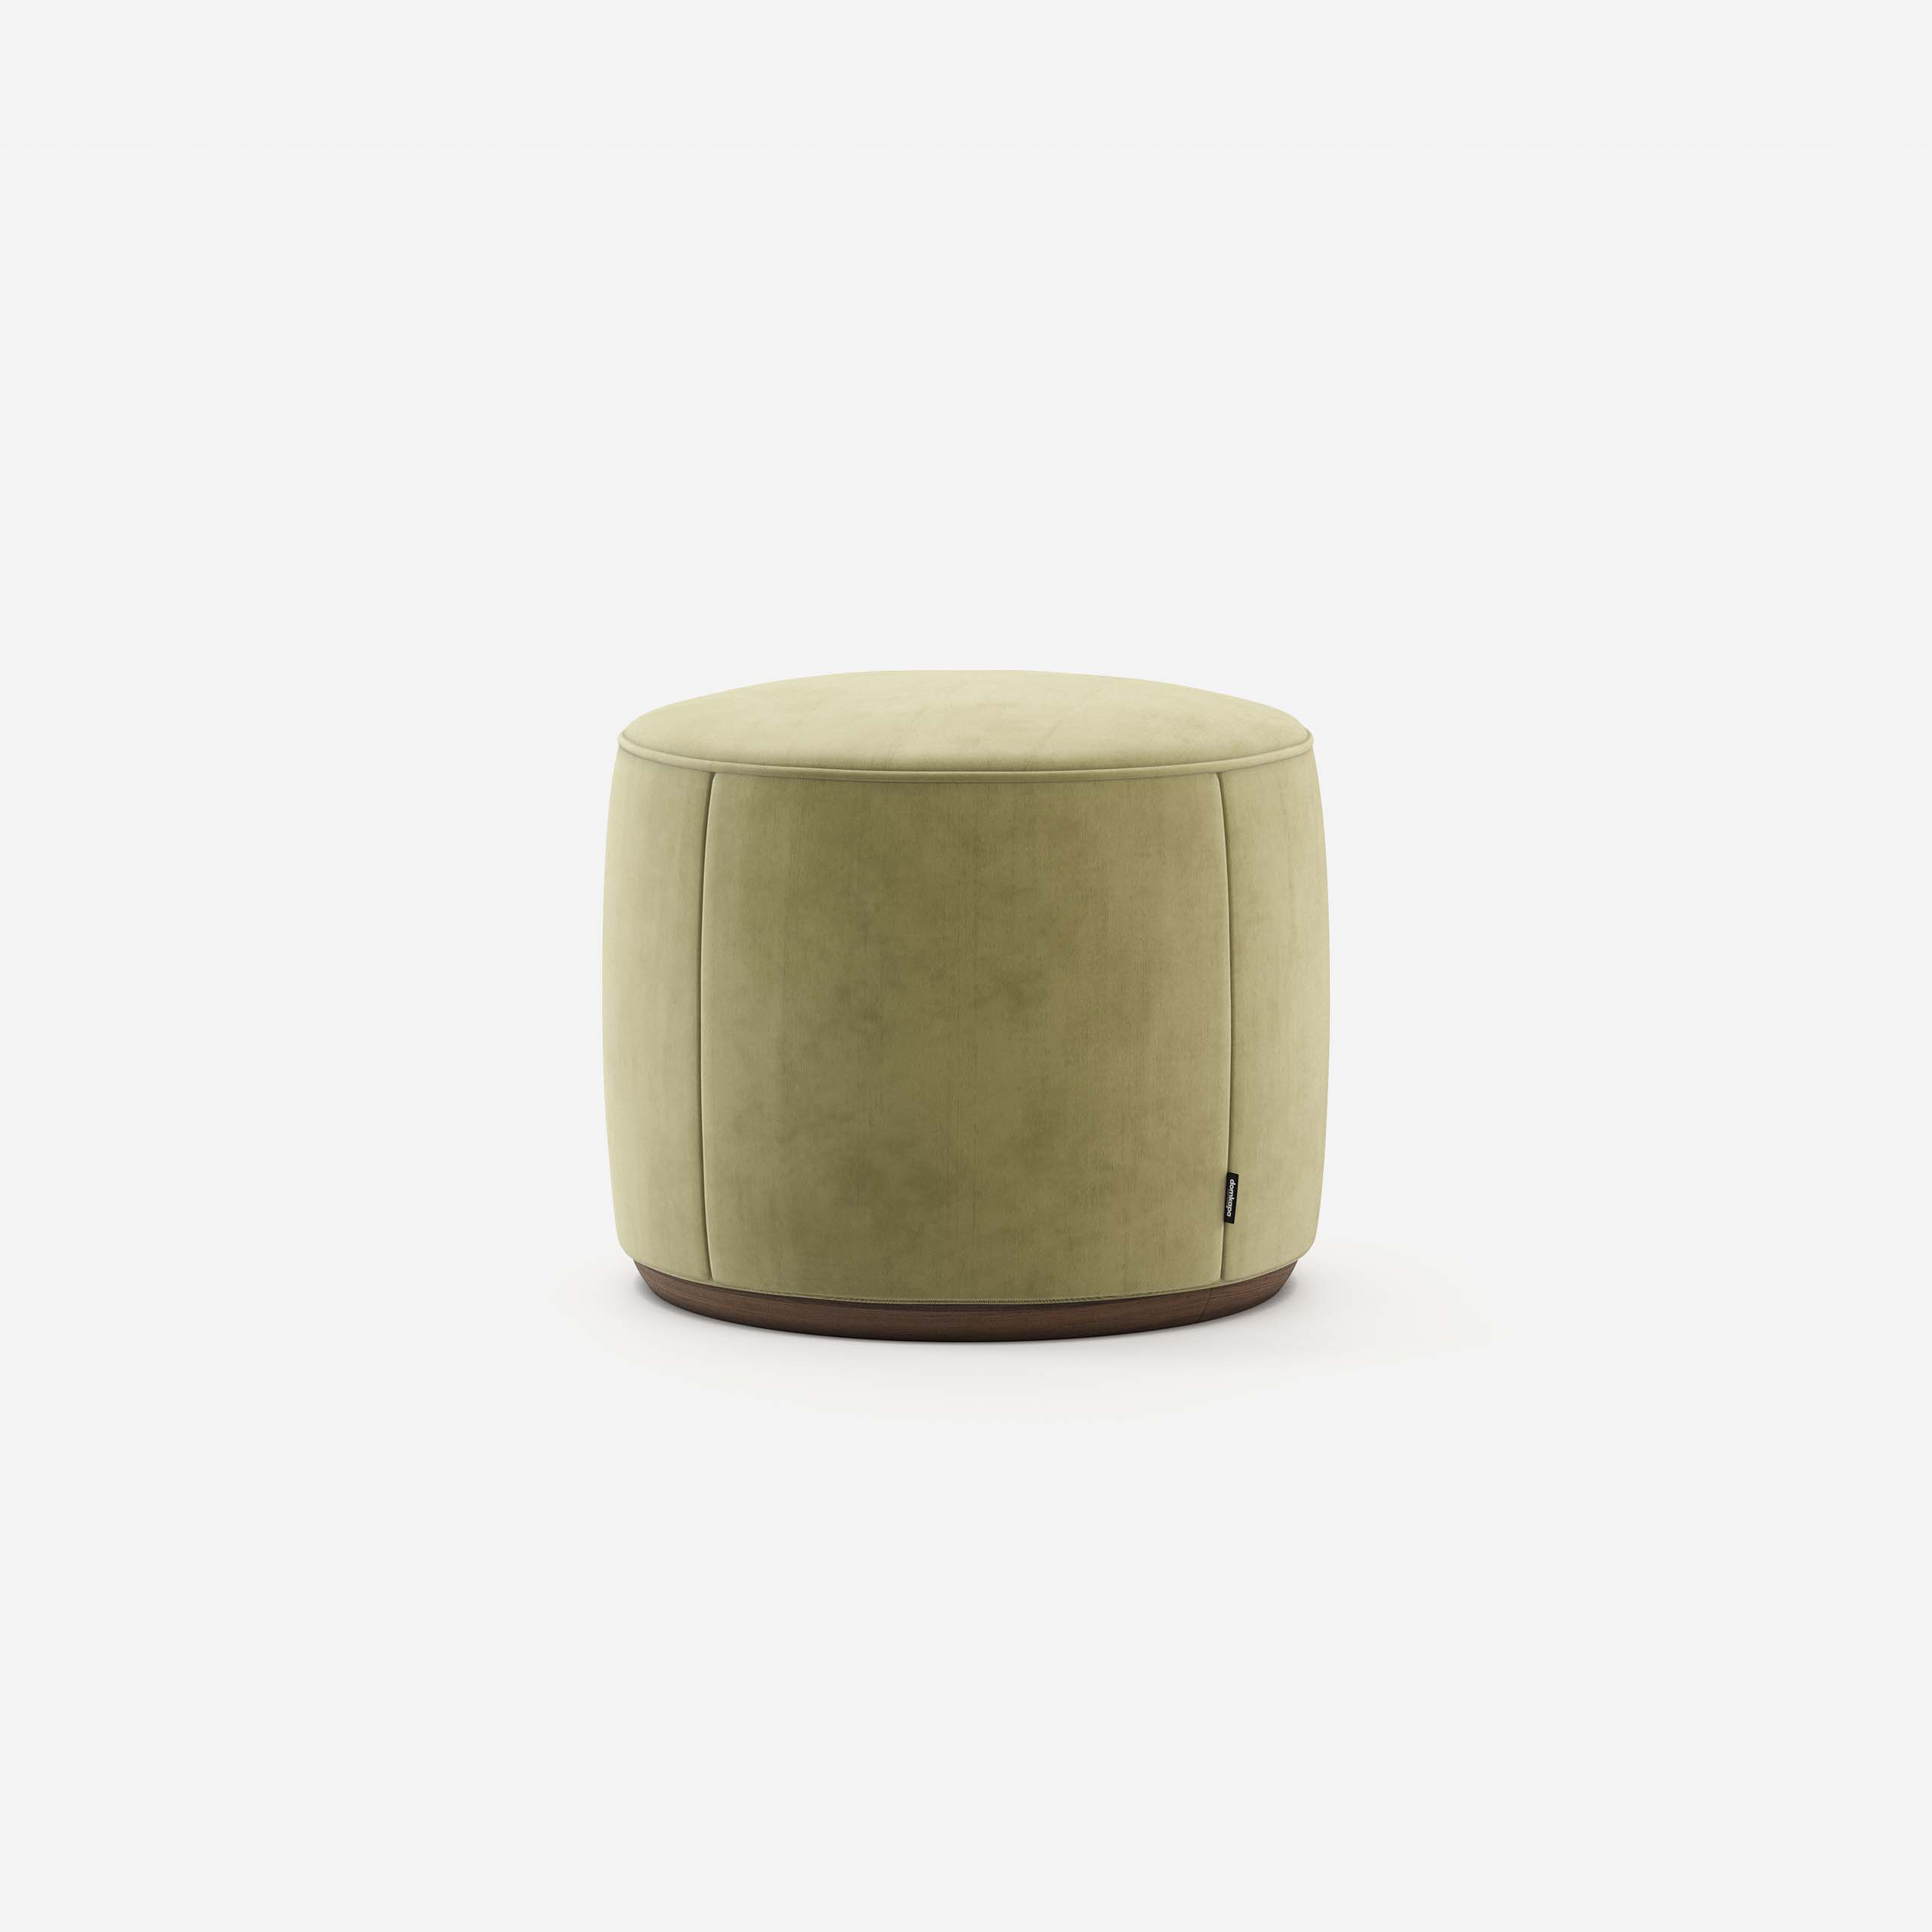 rachel-pouf-small-domkapa-new-collection-2021-home-decor